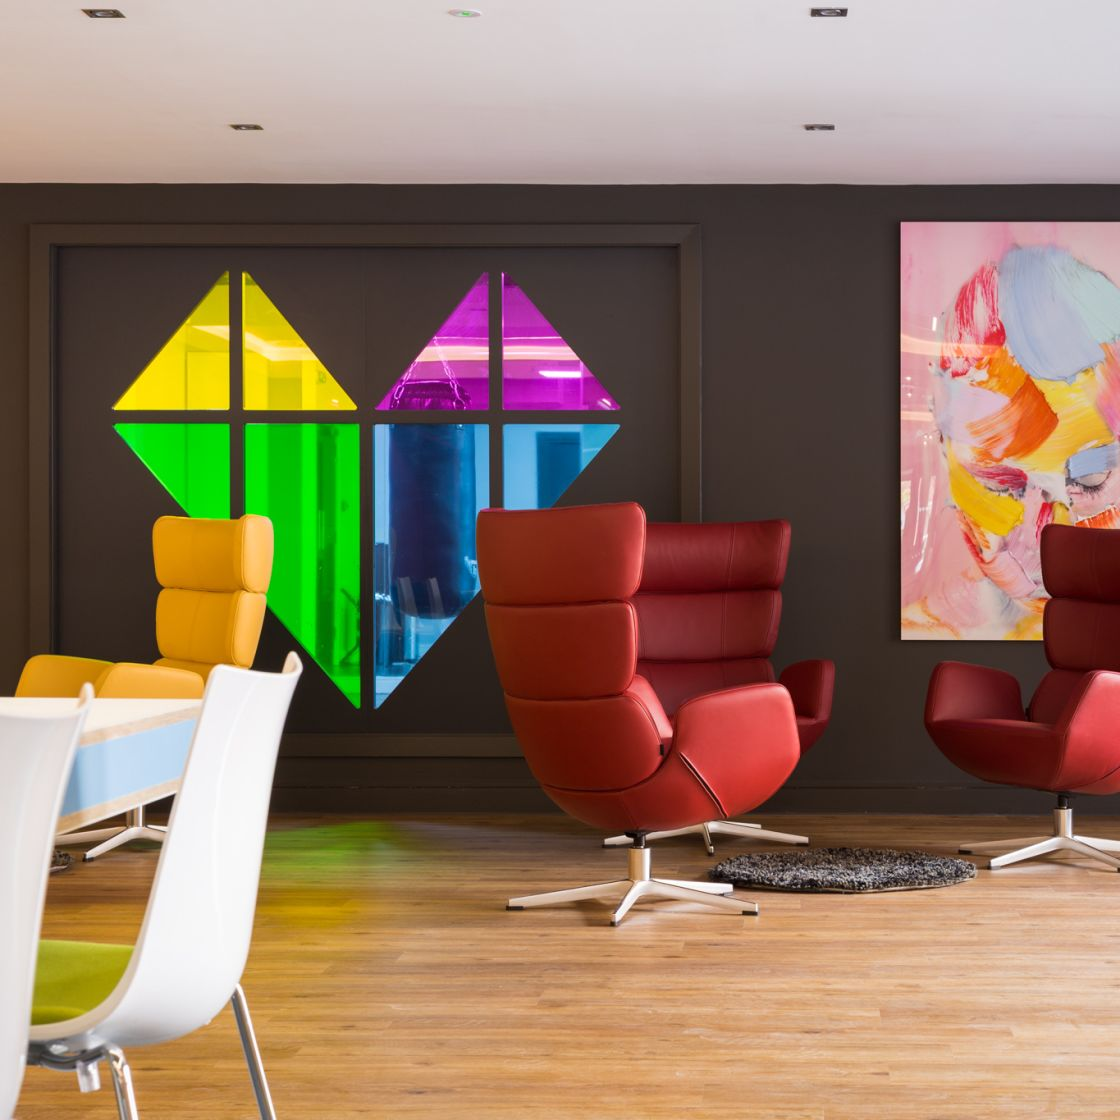 Seating and IconInc wall Decor at IconInc, The Glassworks. Student Accommodation in Leeds